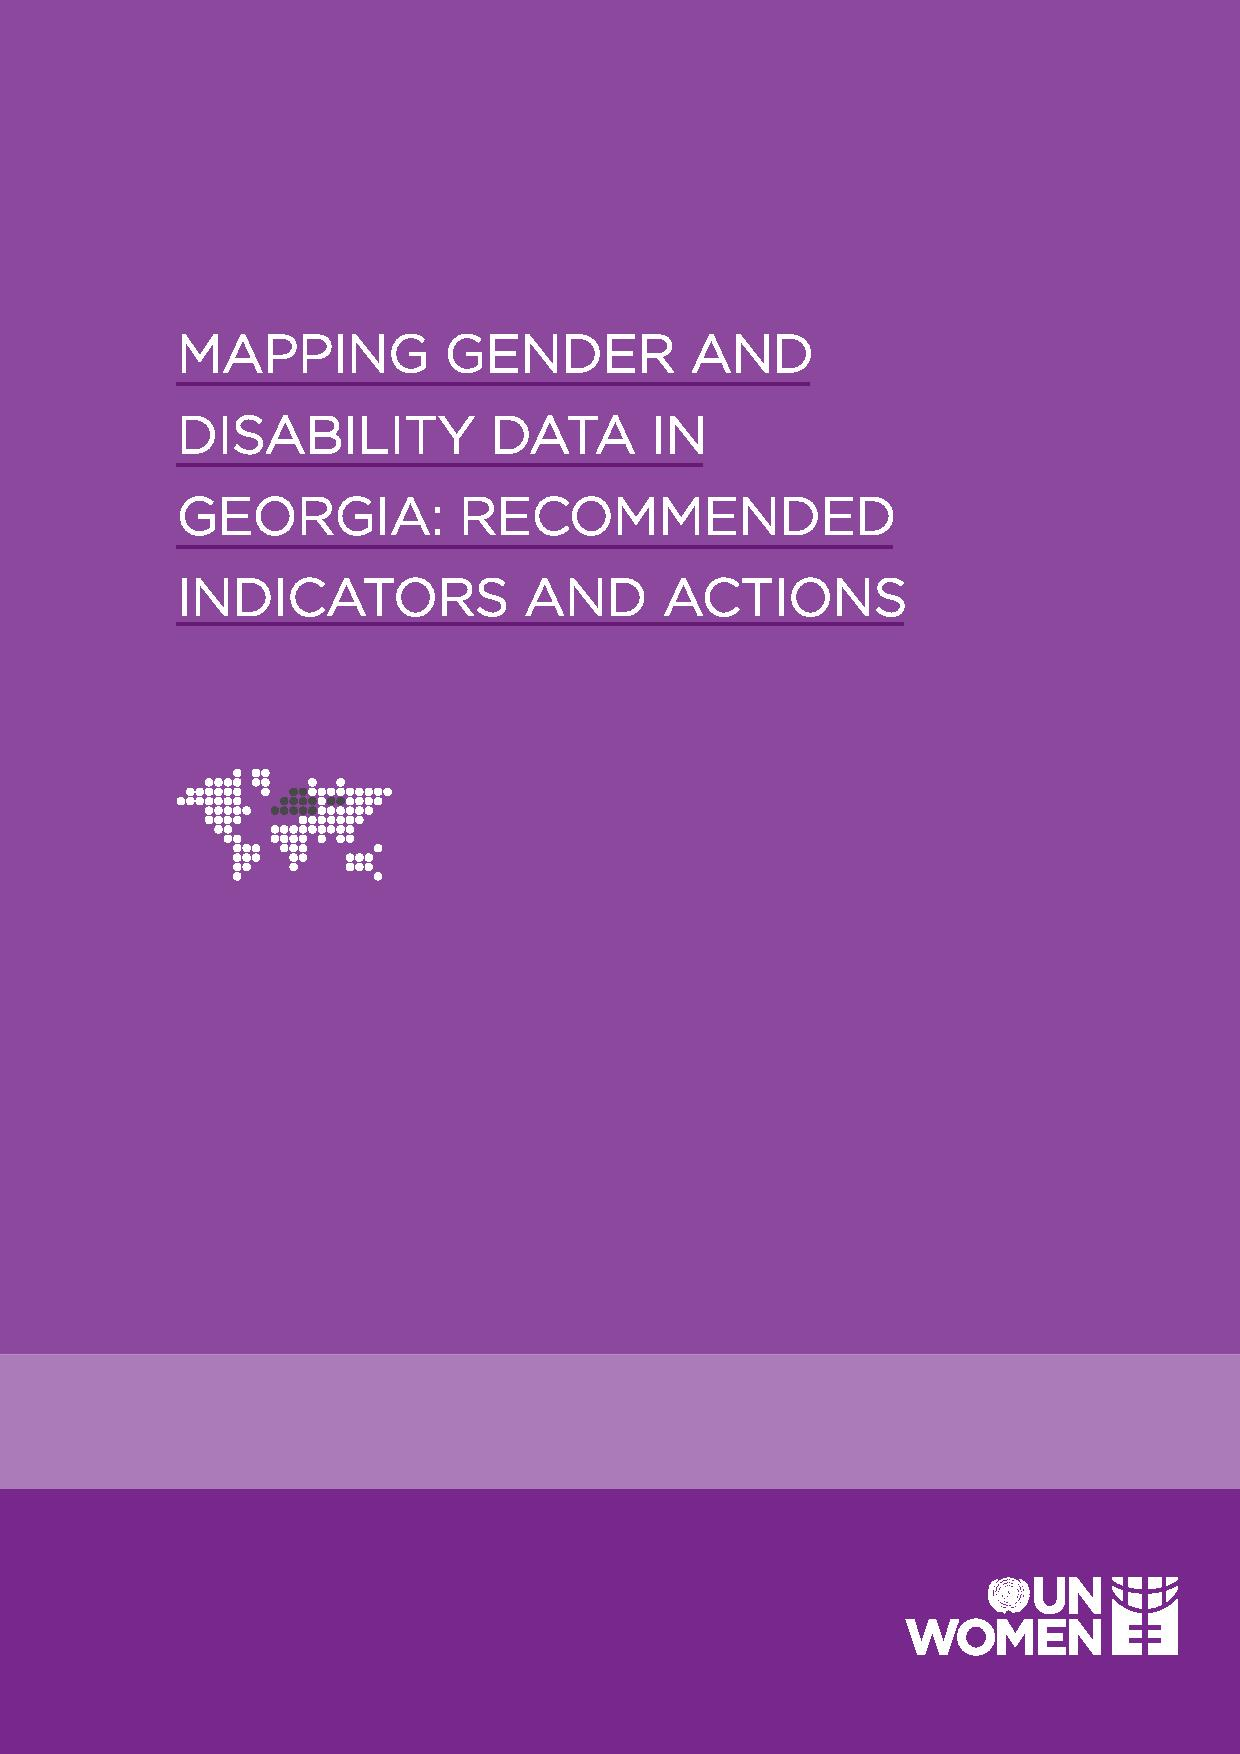 Mapping Gender and Disability Data in Georgia: Recommended Indicators and Actions. Photo: UN Women